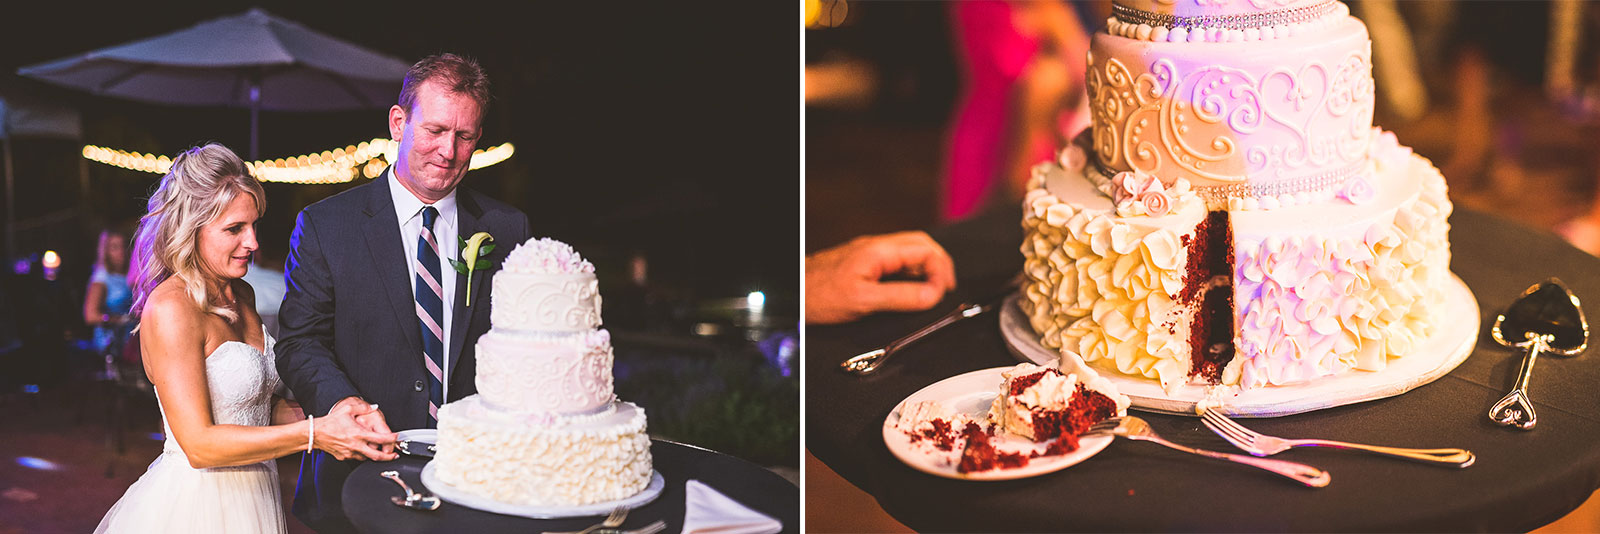 58 cake cutting - Karen + Scott // Fishermens Inn Wedding Photographer Elburn Illinois